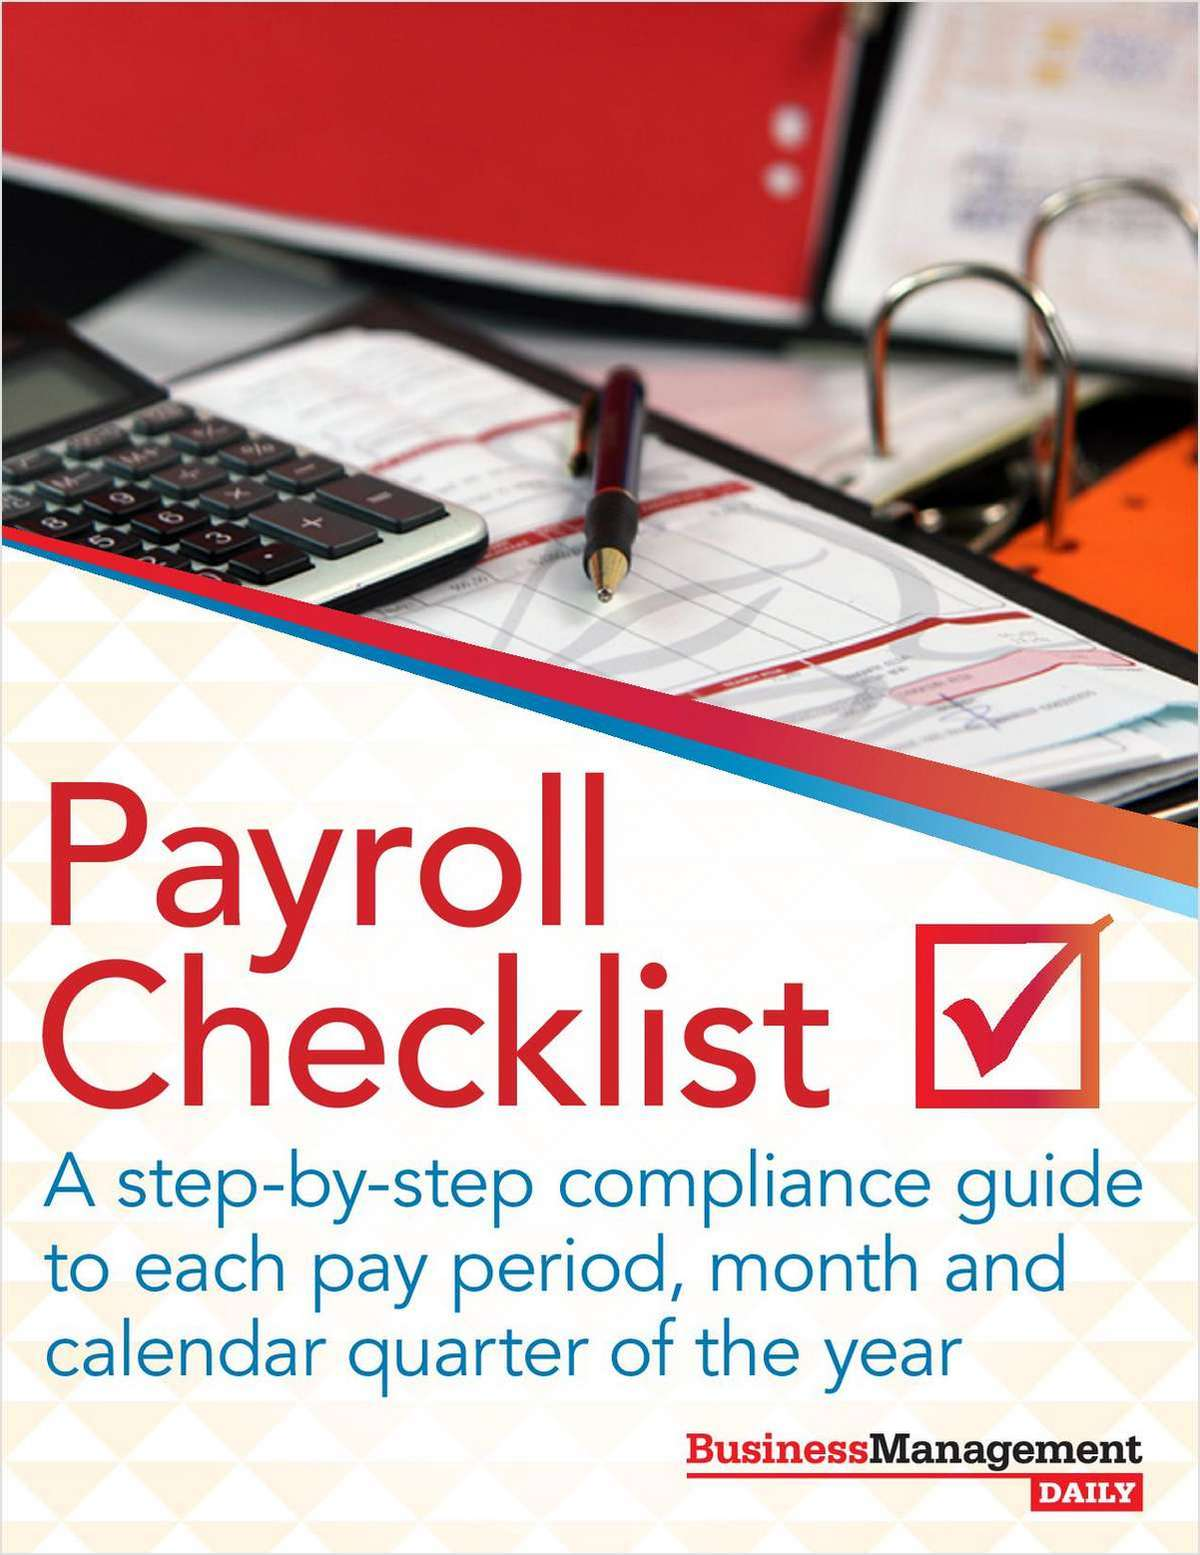 The Payroll Checklist    A step-by-step compliance guide to each pay period, month and calendar quarter of the 2017 year. Learn More >